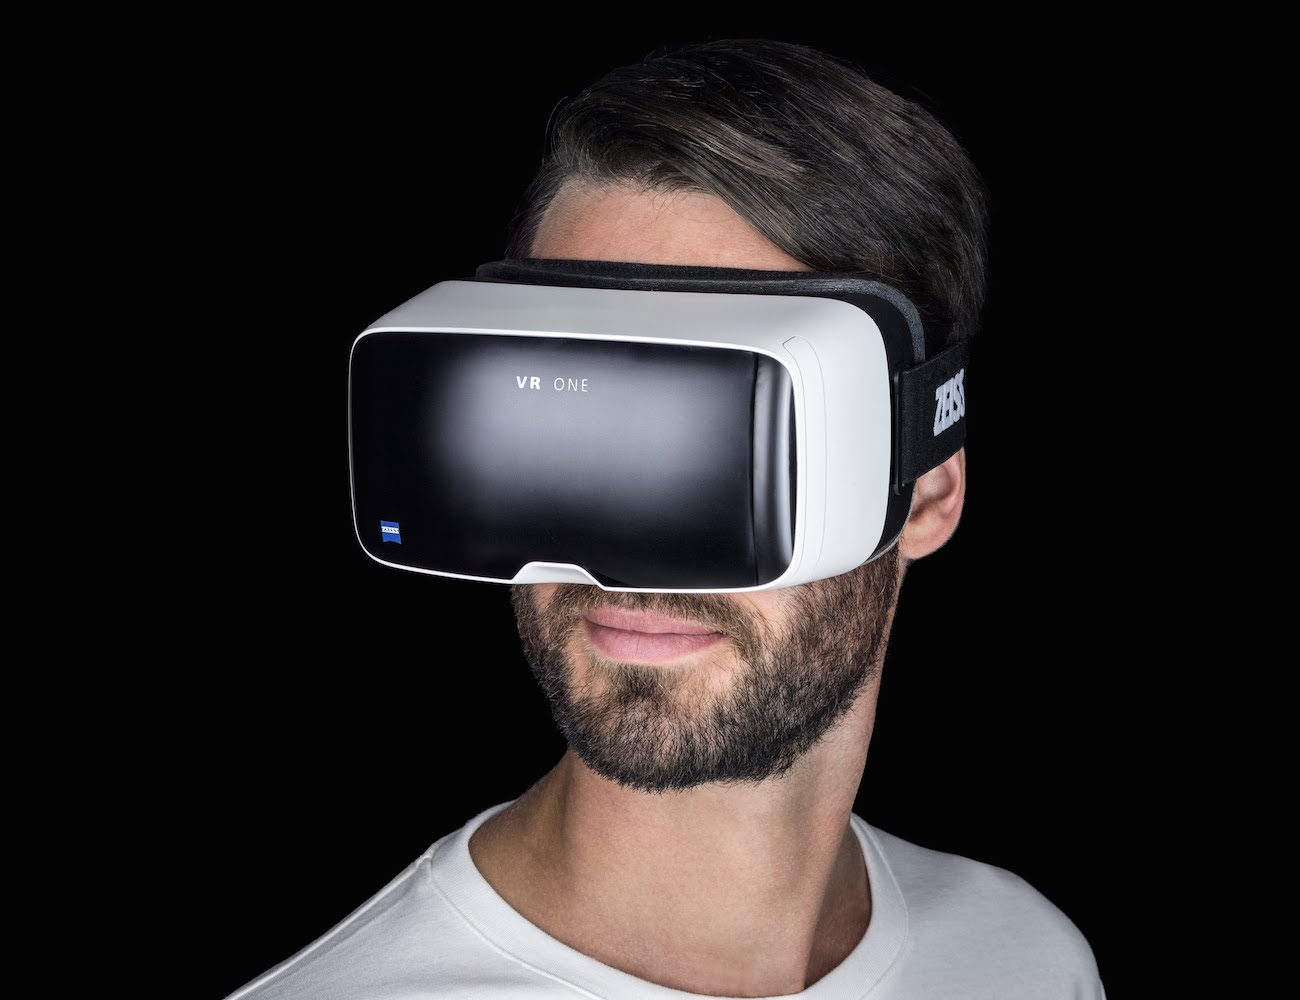 Zeiss VR ONE Smartphone Compatible Virtual Reality Headset